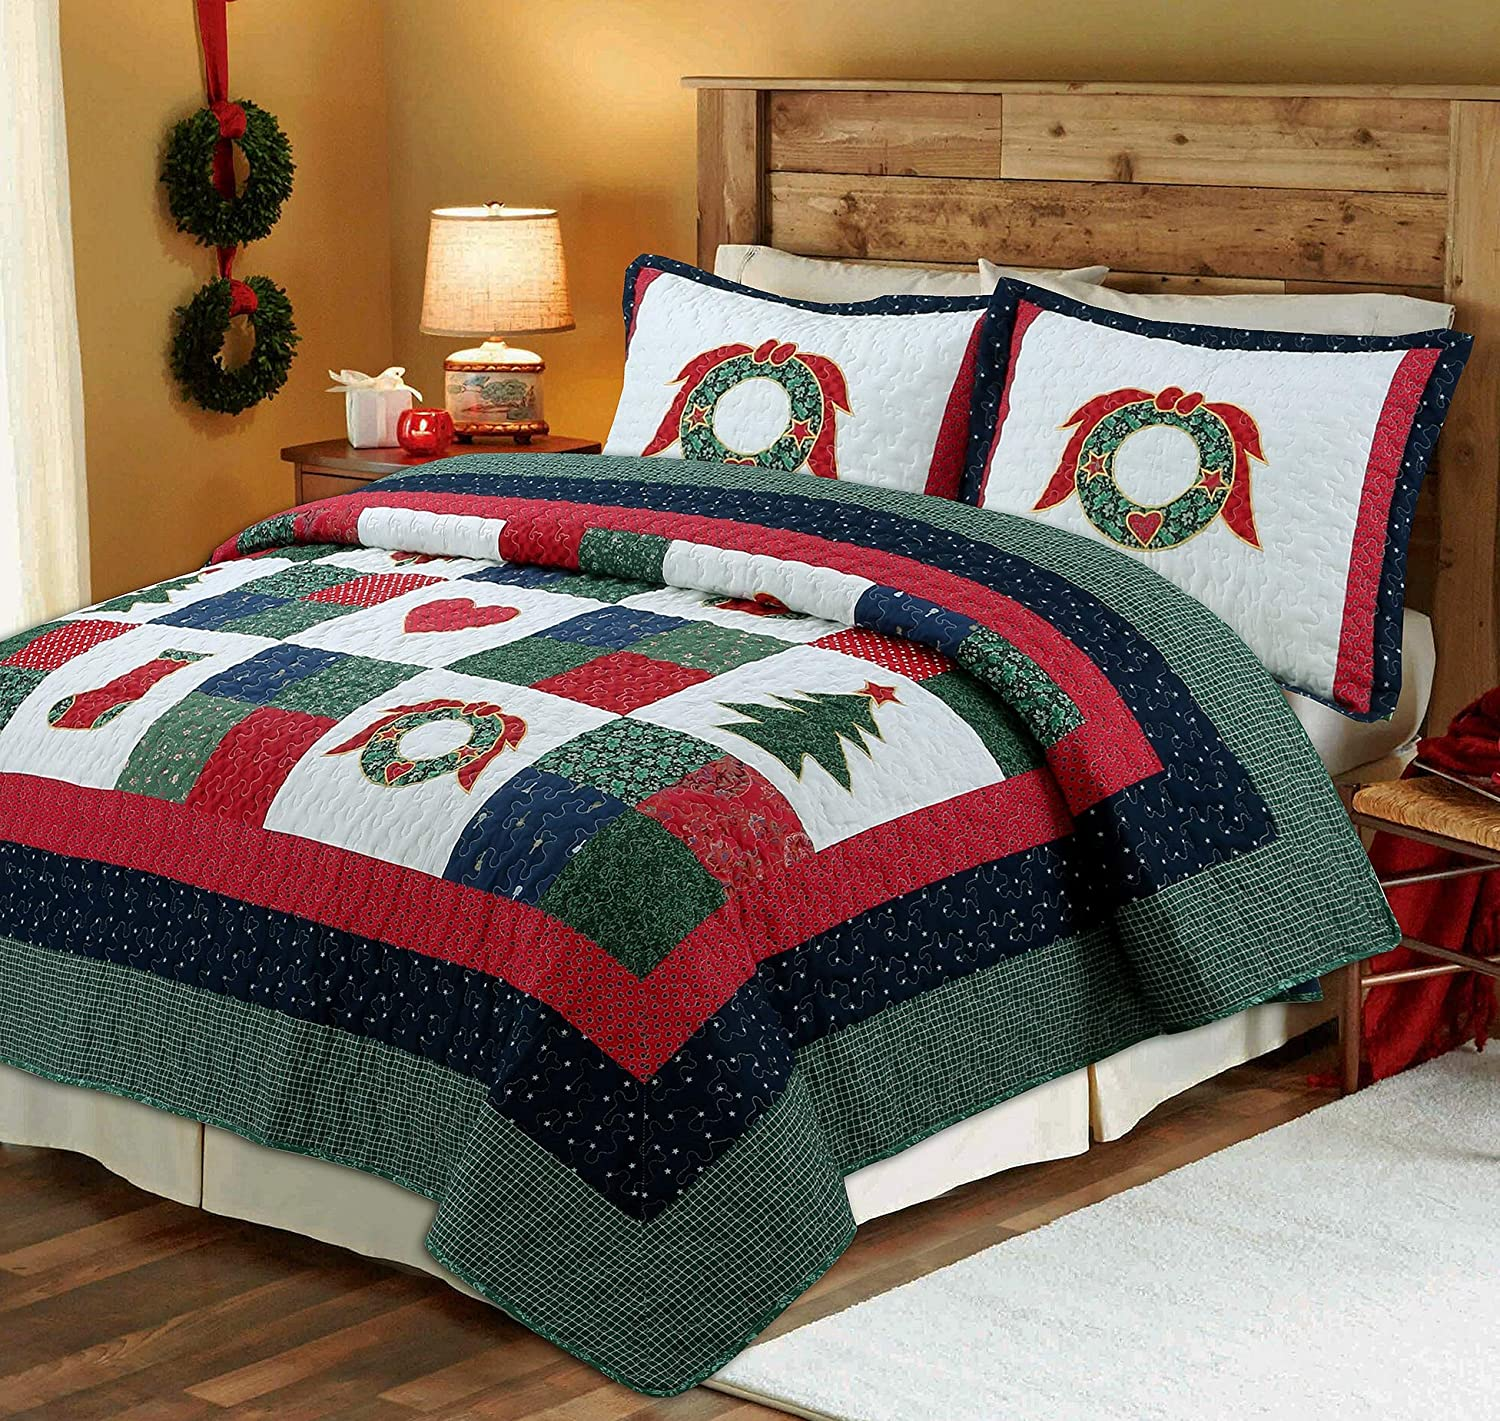 Cozy Line Home Fashions Happy Christmas 3-Piece Cotton Quilt Bedding Set, Coverlet Bedspread (Happy Christmas, Queen - 3 Piece)